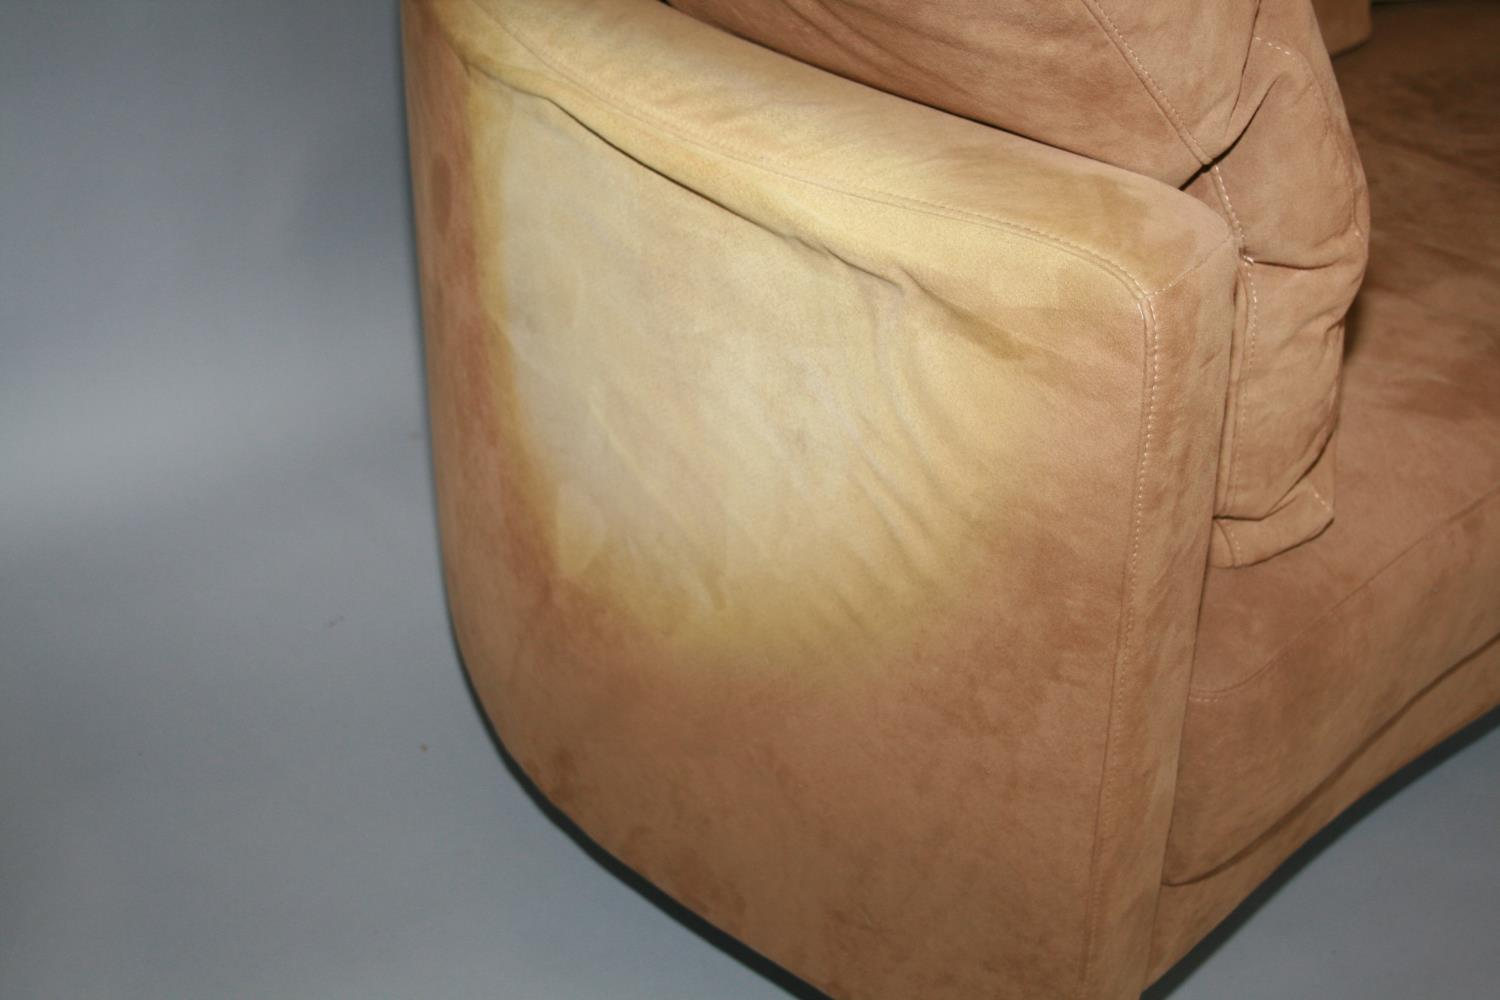 Rolf Benz suede covered sofa with some fading 190 W x 70 H x 80 D - Image 2 of 2